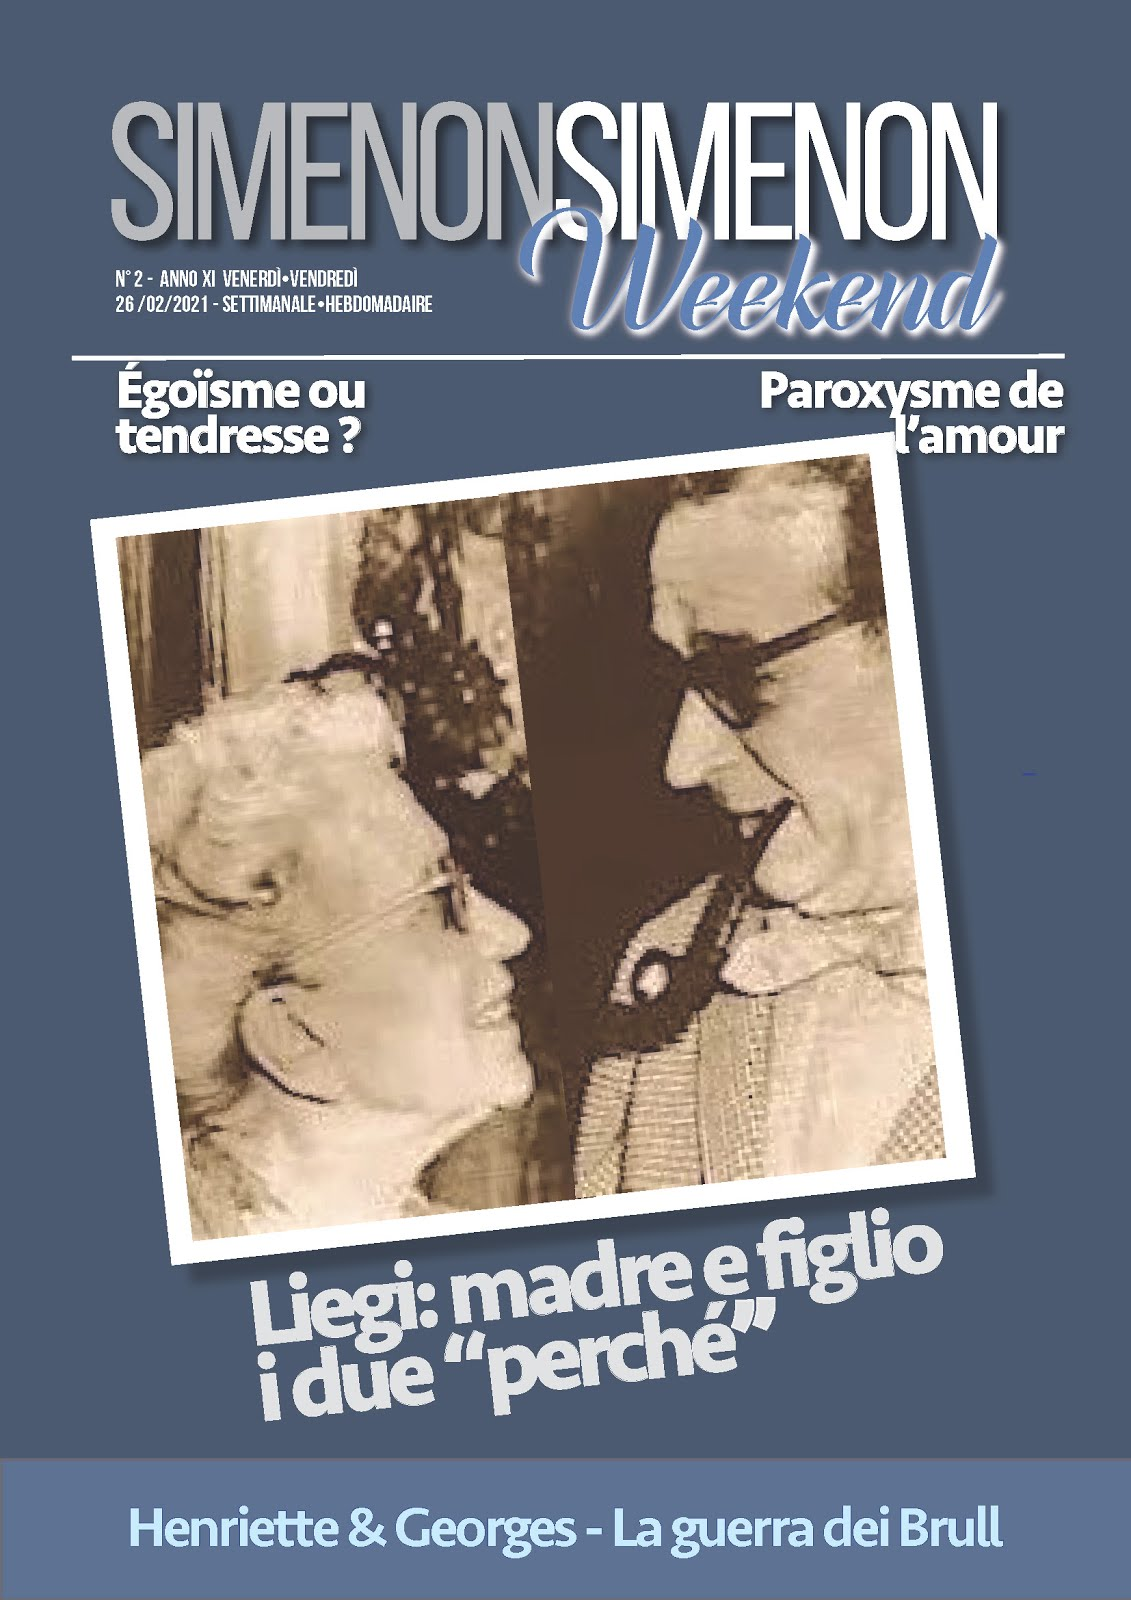 SIMENON SIMENON WEEKEND N.2